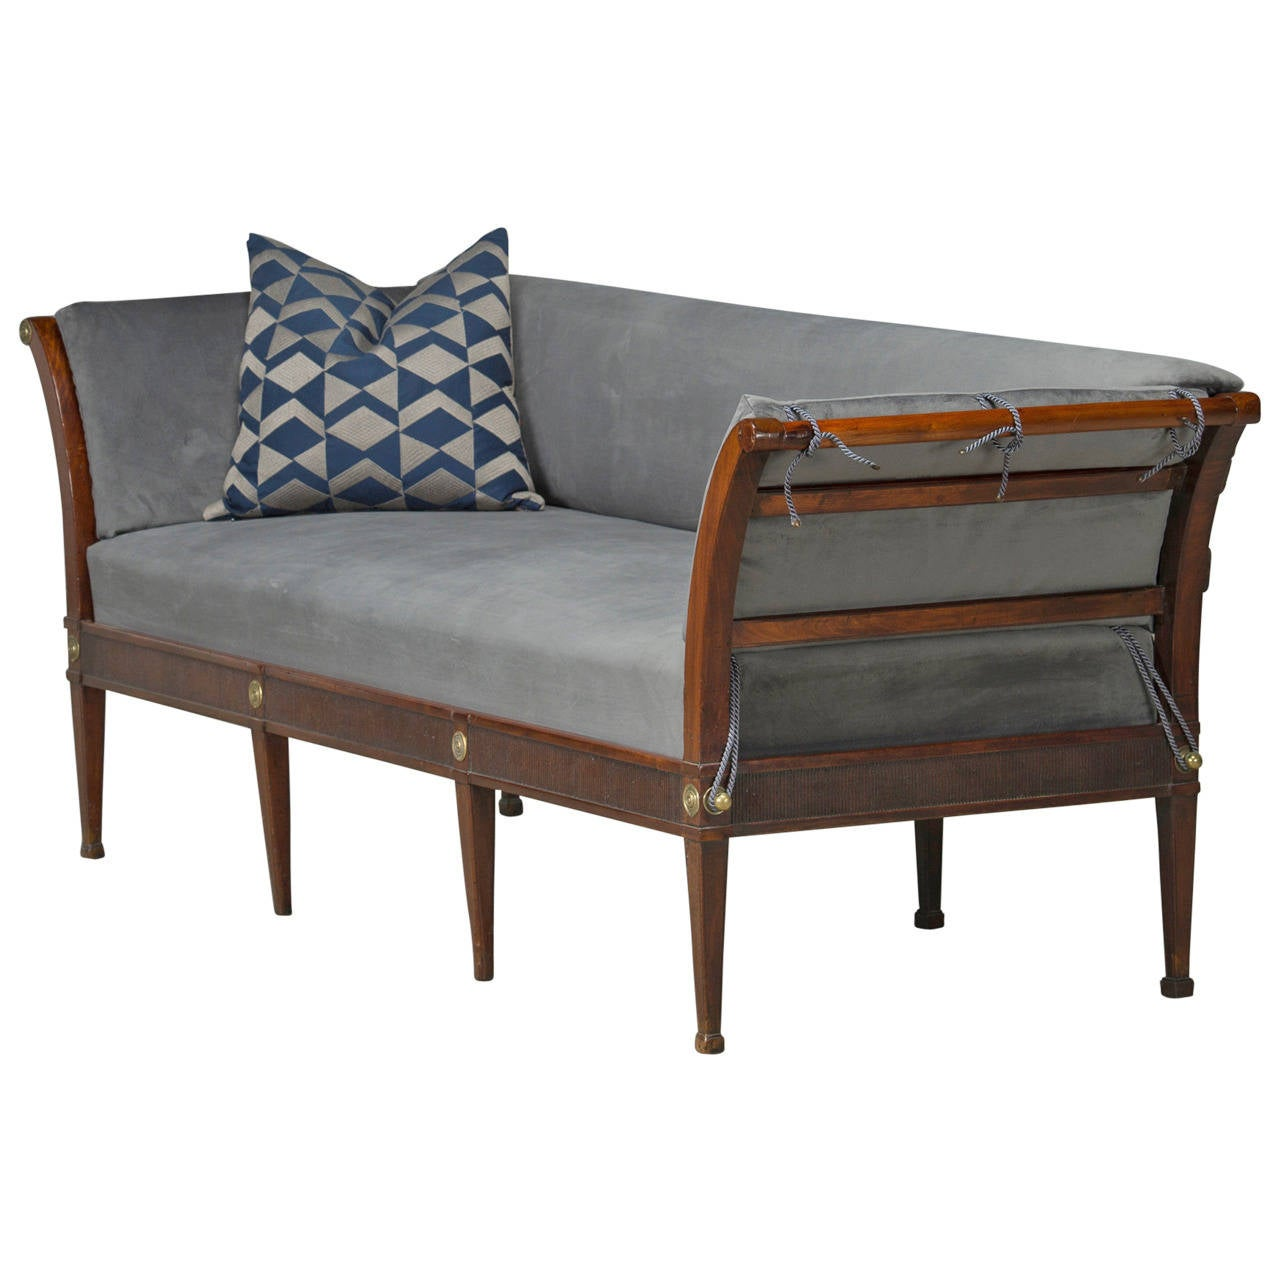 Elegant Louis Xvi Sofa Bench For